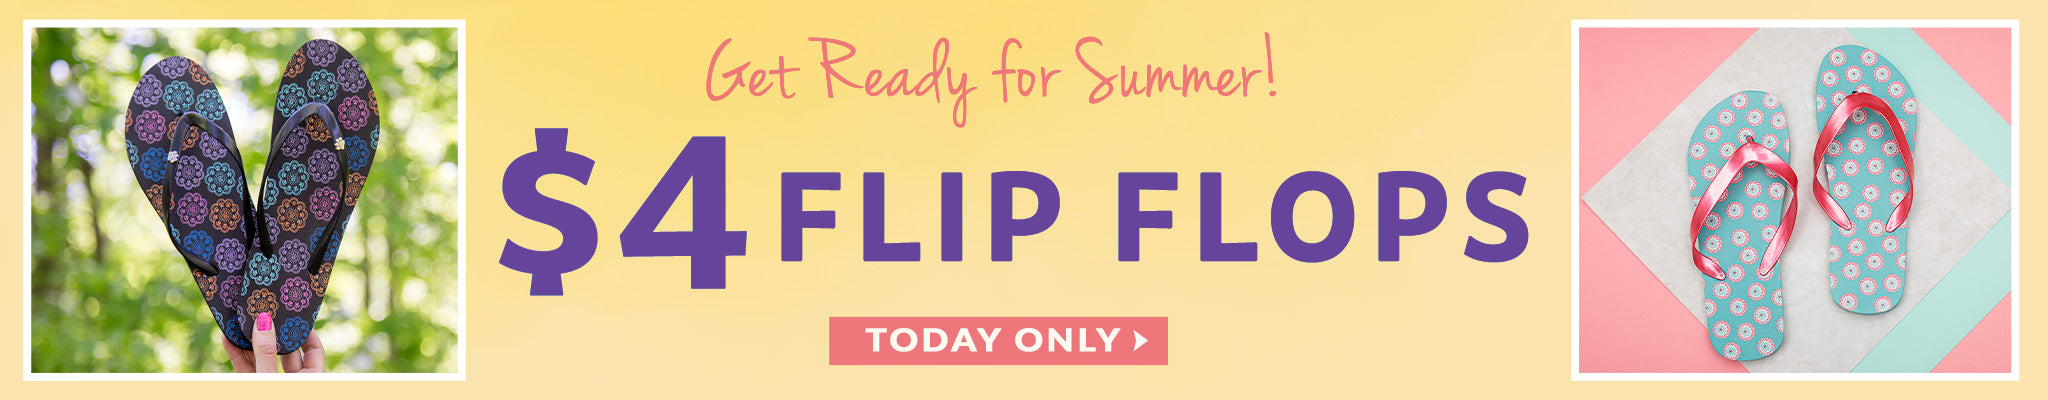 Get Ready for Summer | $4 Flip Flops | Today Only